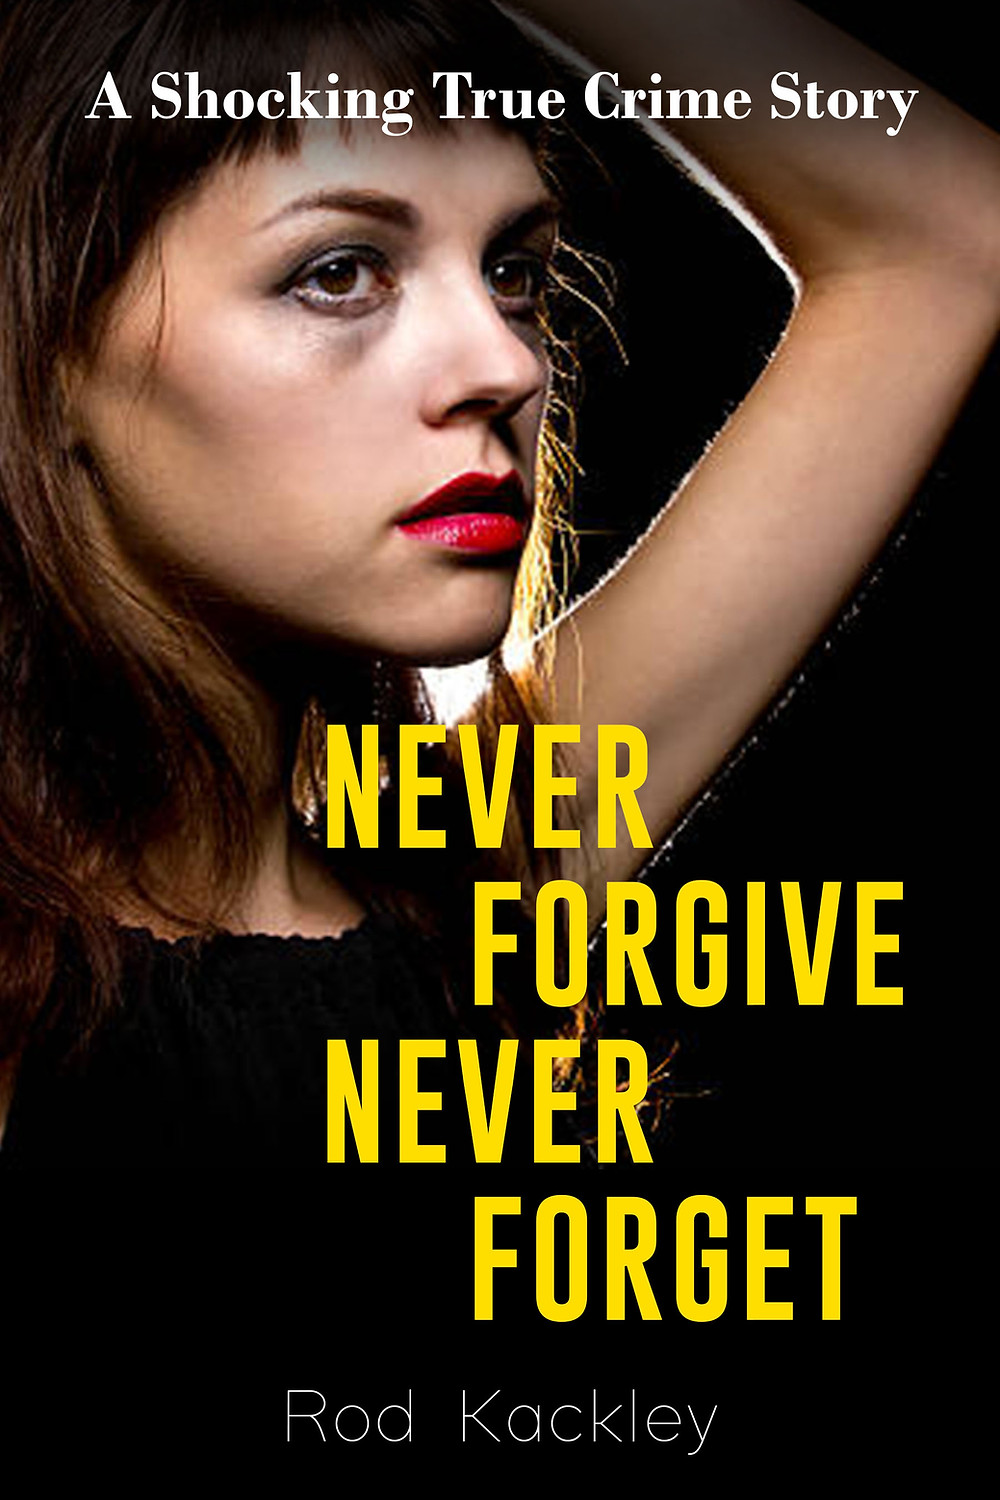 Never Forgive Never Forget by Rod Kackley